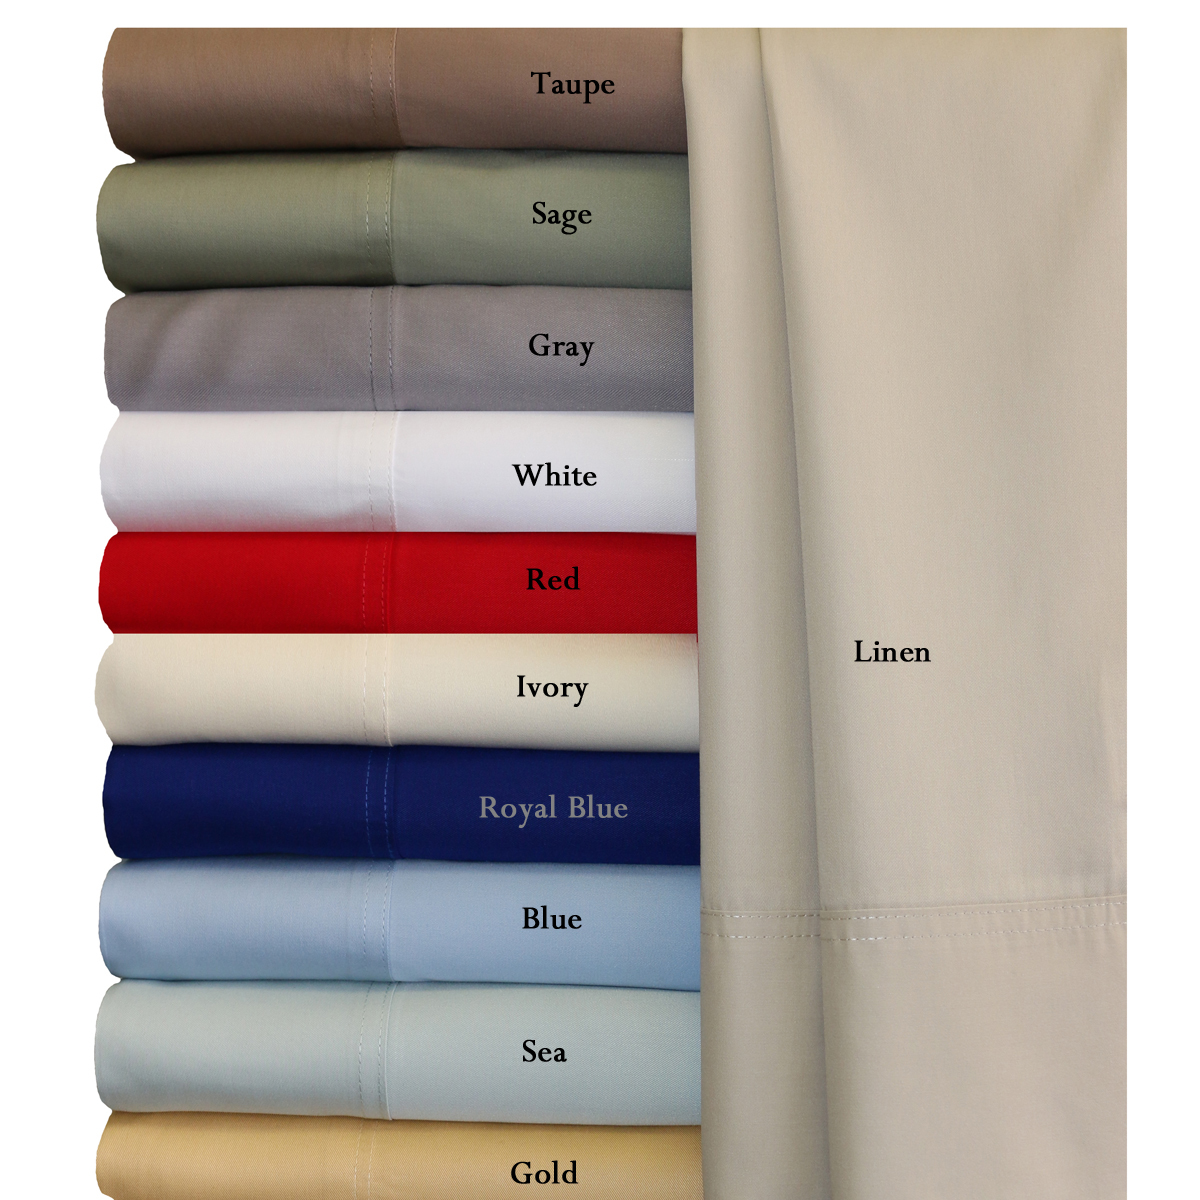 """Royal Tradition. Super Soft 100% Viscose from Bamboo Sheet Sets.Wrap your self in the softness of the luxurious 100% Rayon from Bamboo sheets like those found in royalty homes. You won't be able to go back to cotton sheets after trying these 100% Viscose from Bamboo sheets. Amazingly soft similar to cashmere of silk. 60% more absorbent than cotton. Sustainable, fast growth rate over 1 meter per day. Requires significantly less pesticides than cotton and is naturally irrigated. Natural anti-bacterial and deodorizing properties.*"""" Viscose from Bamboo """" or """" Rayon from Bamboo"""" are both interchangeable common terms used when referring the Bamboo fabric derivatives. Bamboo woods undergo additional process before the fibers are spun into yarns. Therefore, bamboo yarns are turned into a Viscose or Rayon than woven to create bamboo fabrics.* Bamboo is one of the fastest growing plants because of it's ability to absorb water and is thus a very environmentally friendly material. These are the """" Greenest Sheets"""" around. This explain why bamboo sheets wick so much water away from the body, keeping people dry and comfortable."""